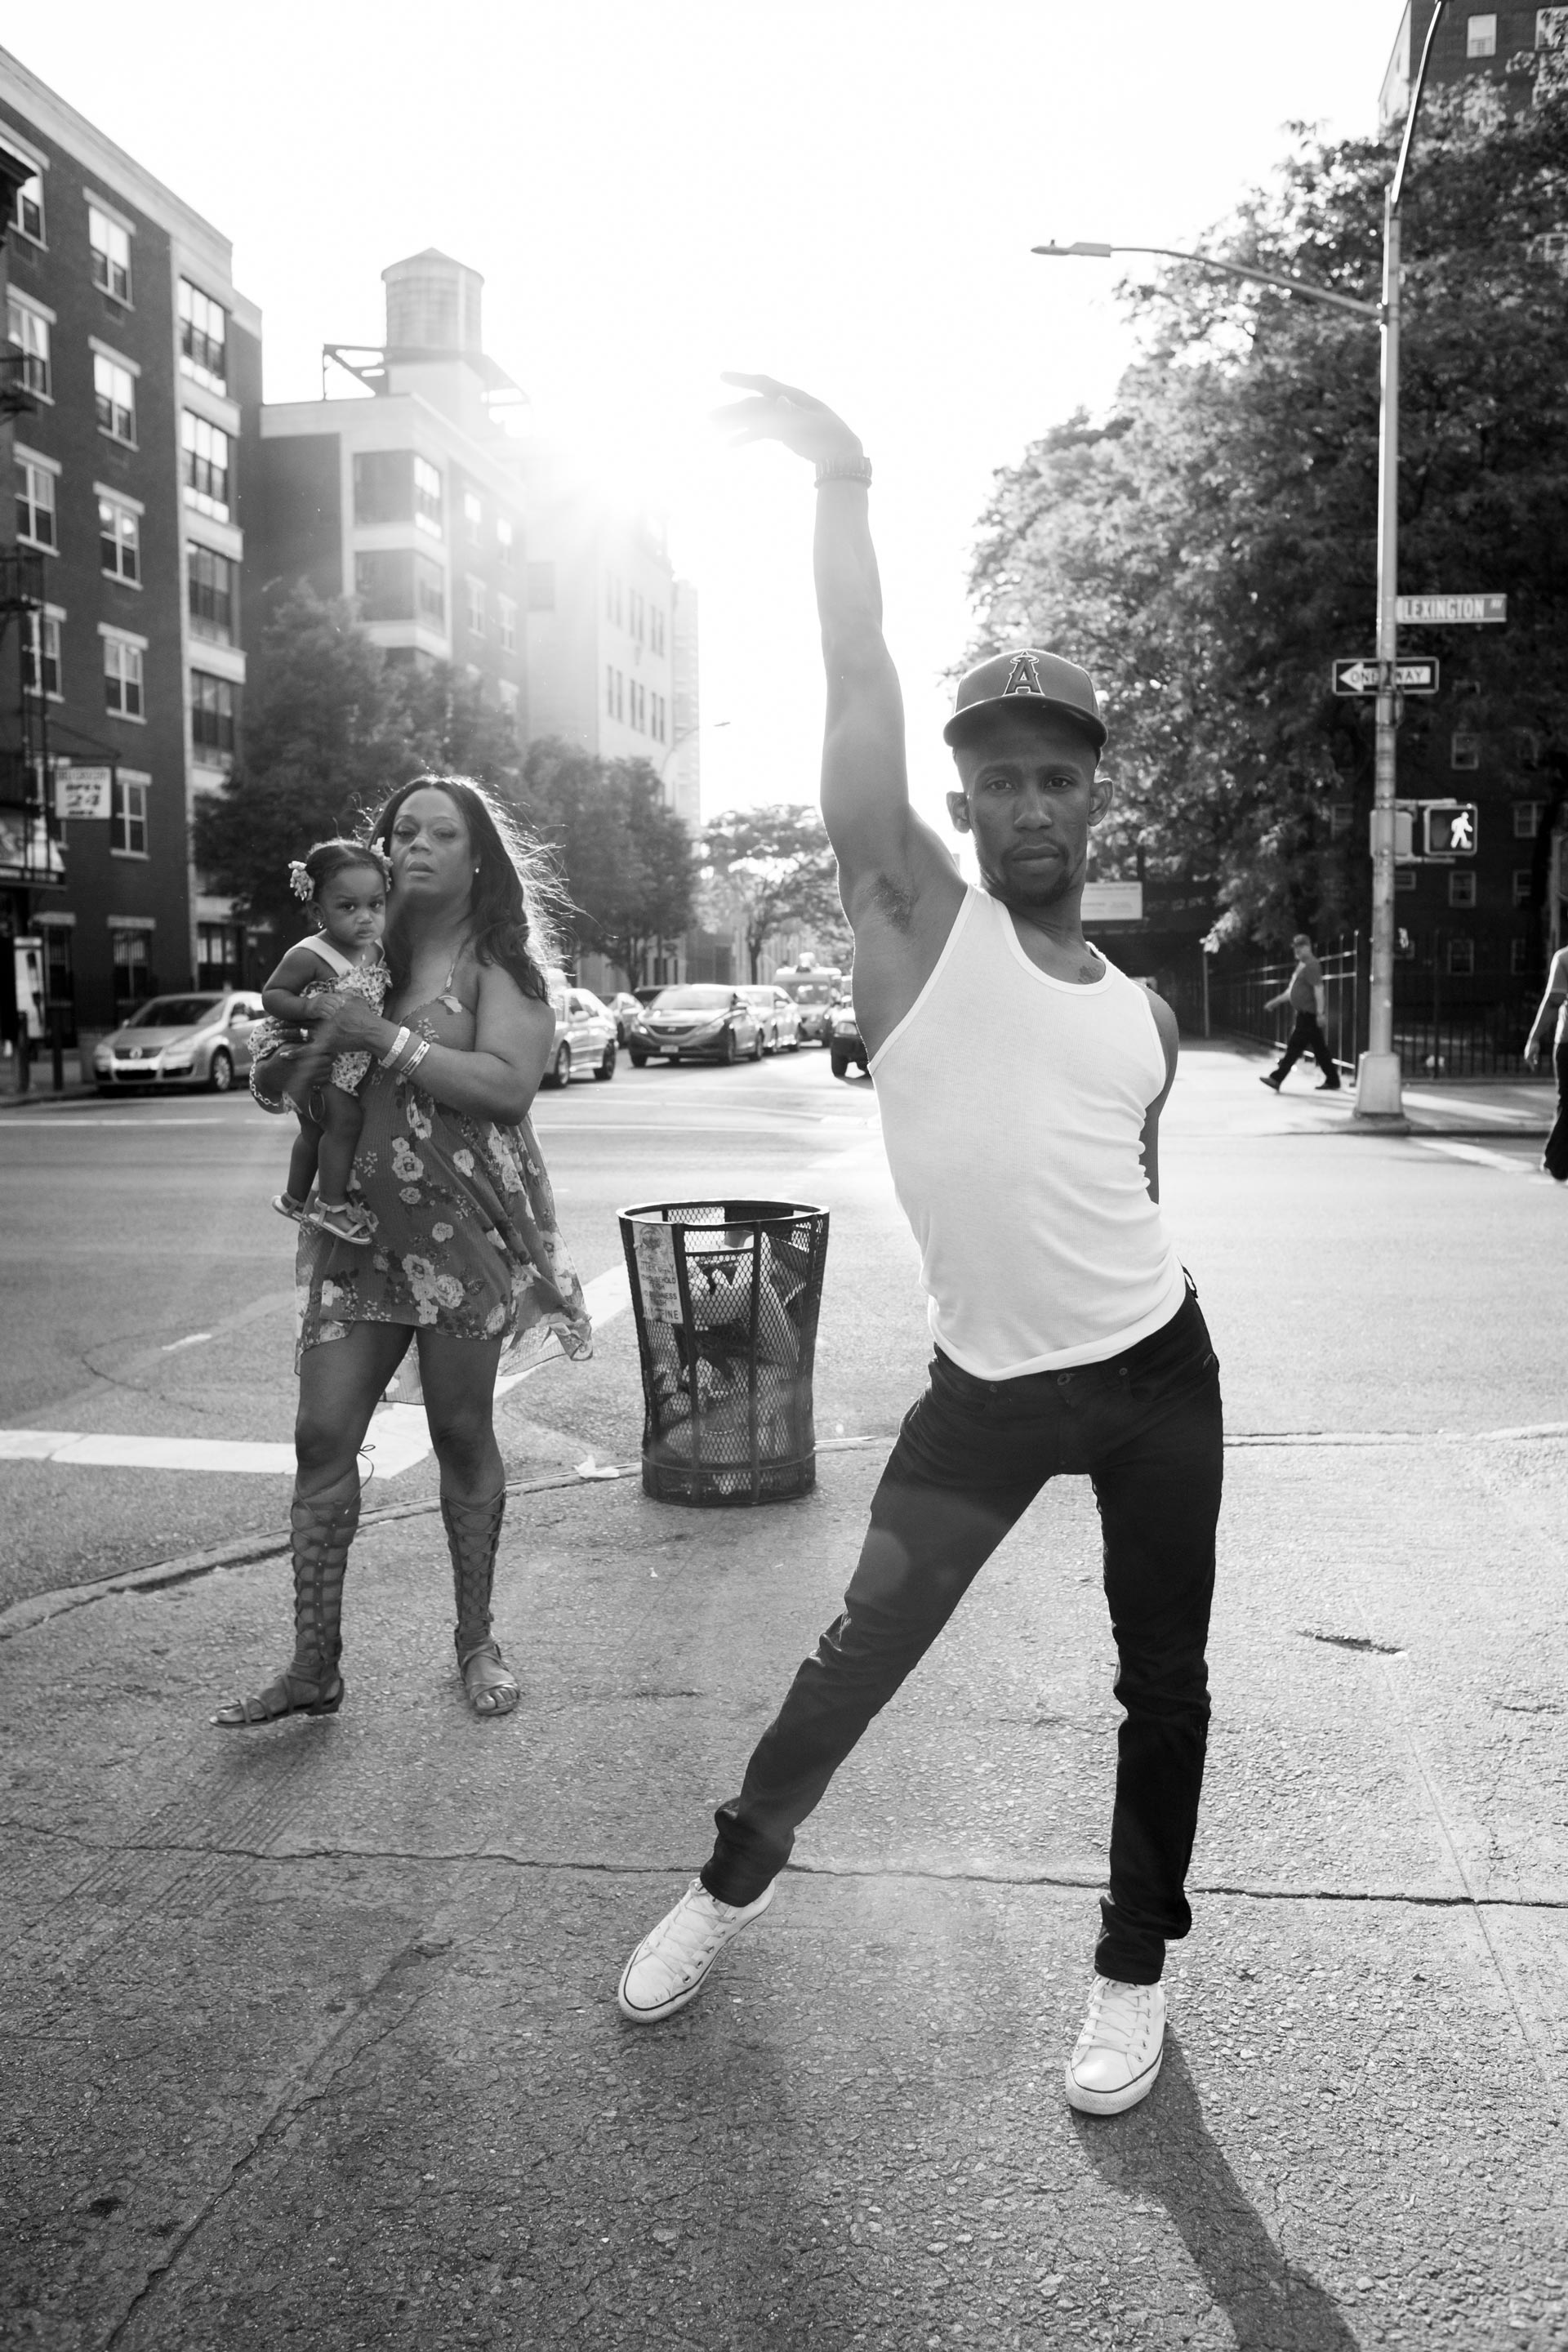 Derek Auguste strikes a vogue pose on Lexington Avenue in East Harlem, NY.